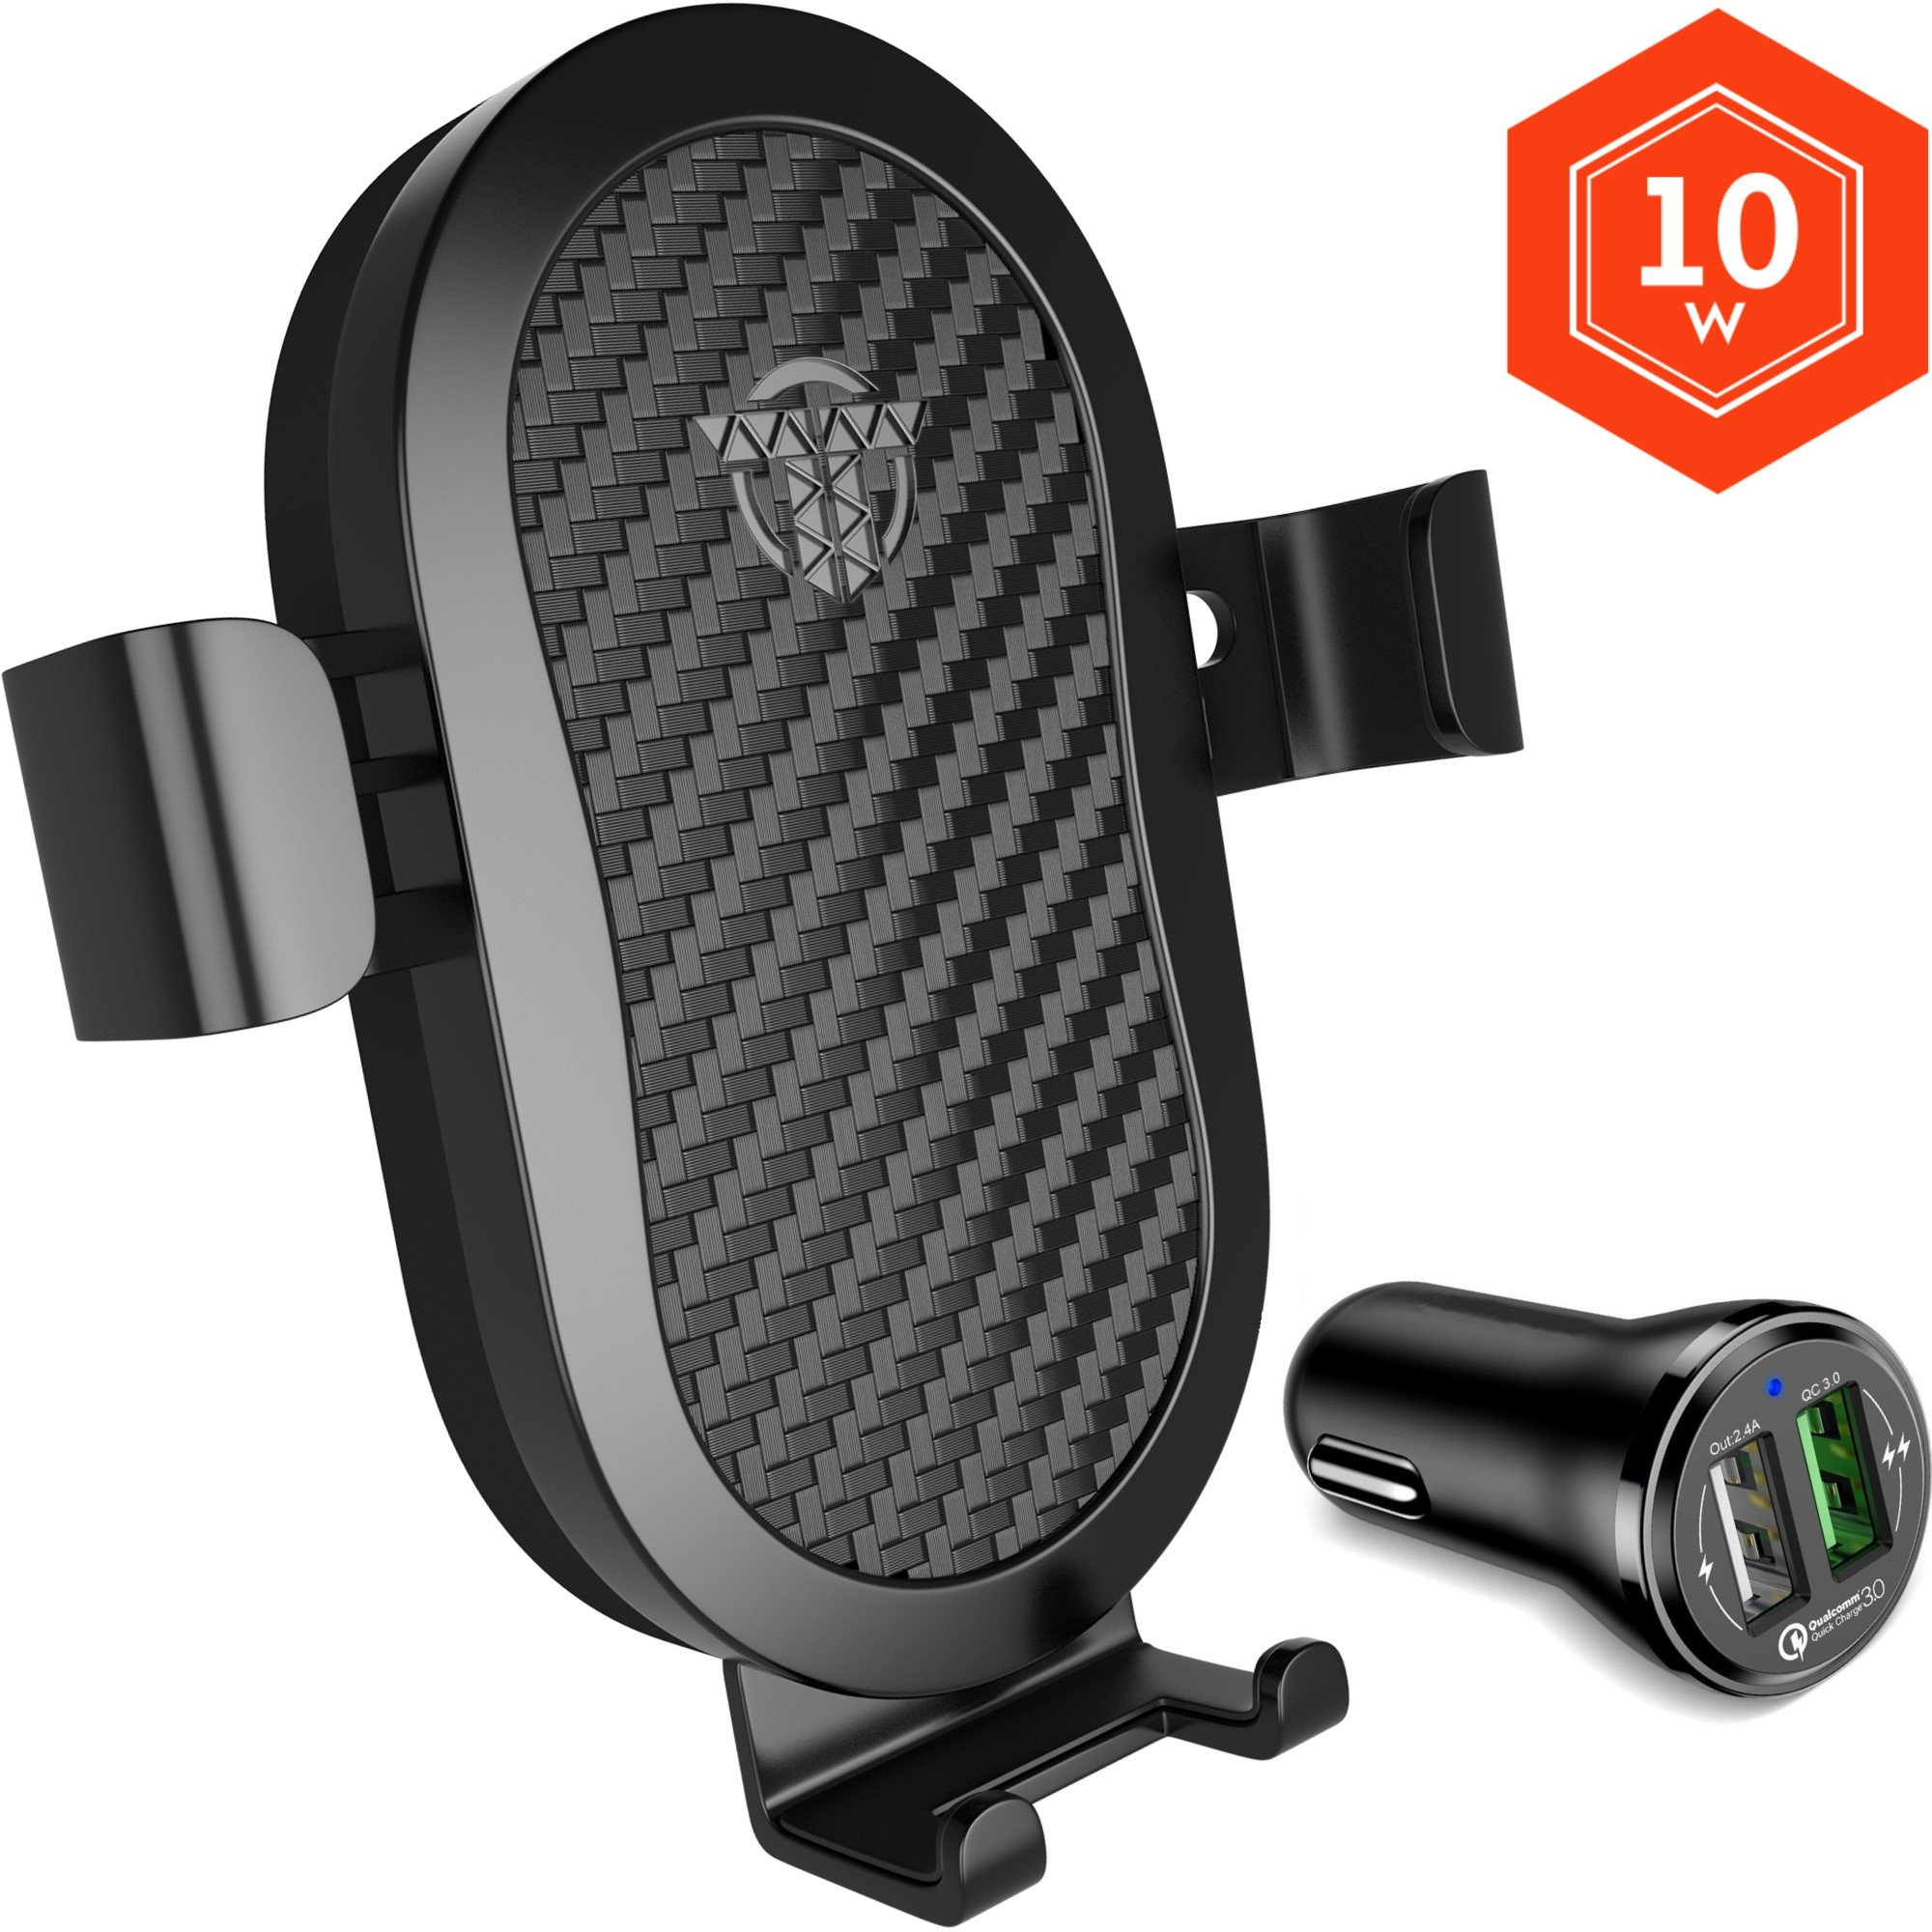 Wireless Car Charger Mount - 10W Fast Qi Car Charger Holder For iPhone X 8 Samsung Galaxy S9 S8 S7 LG Premium Charge Stand Cars Kit With QC3.0 Quick Gravity Dock and Best Q1 Cell Phone Air Vent Set